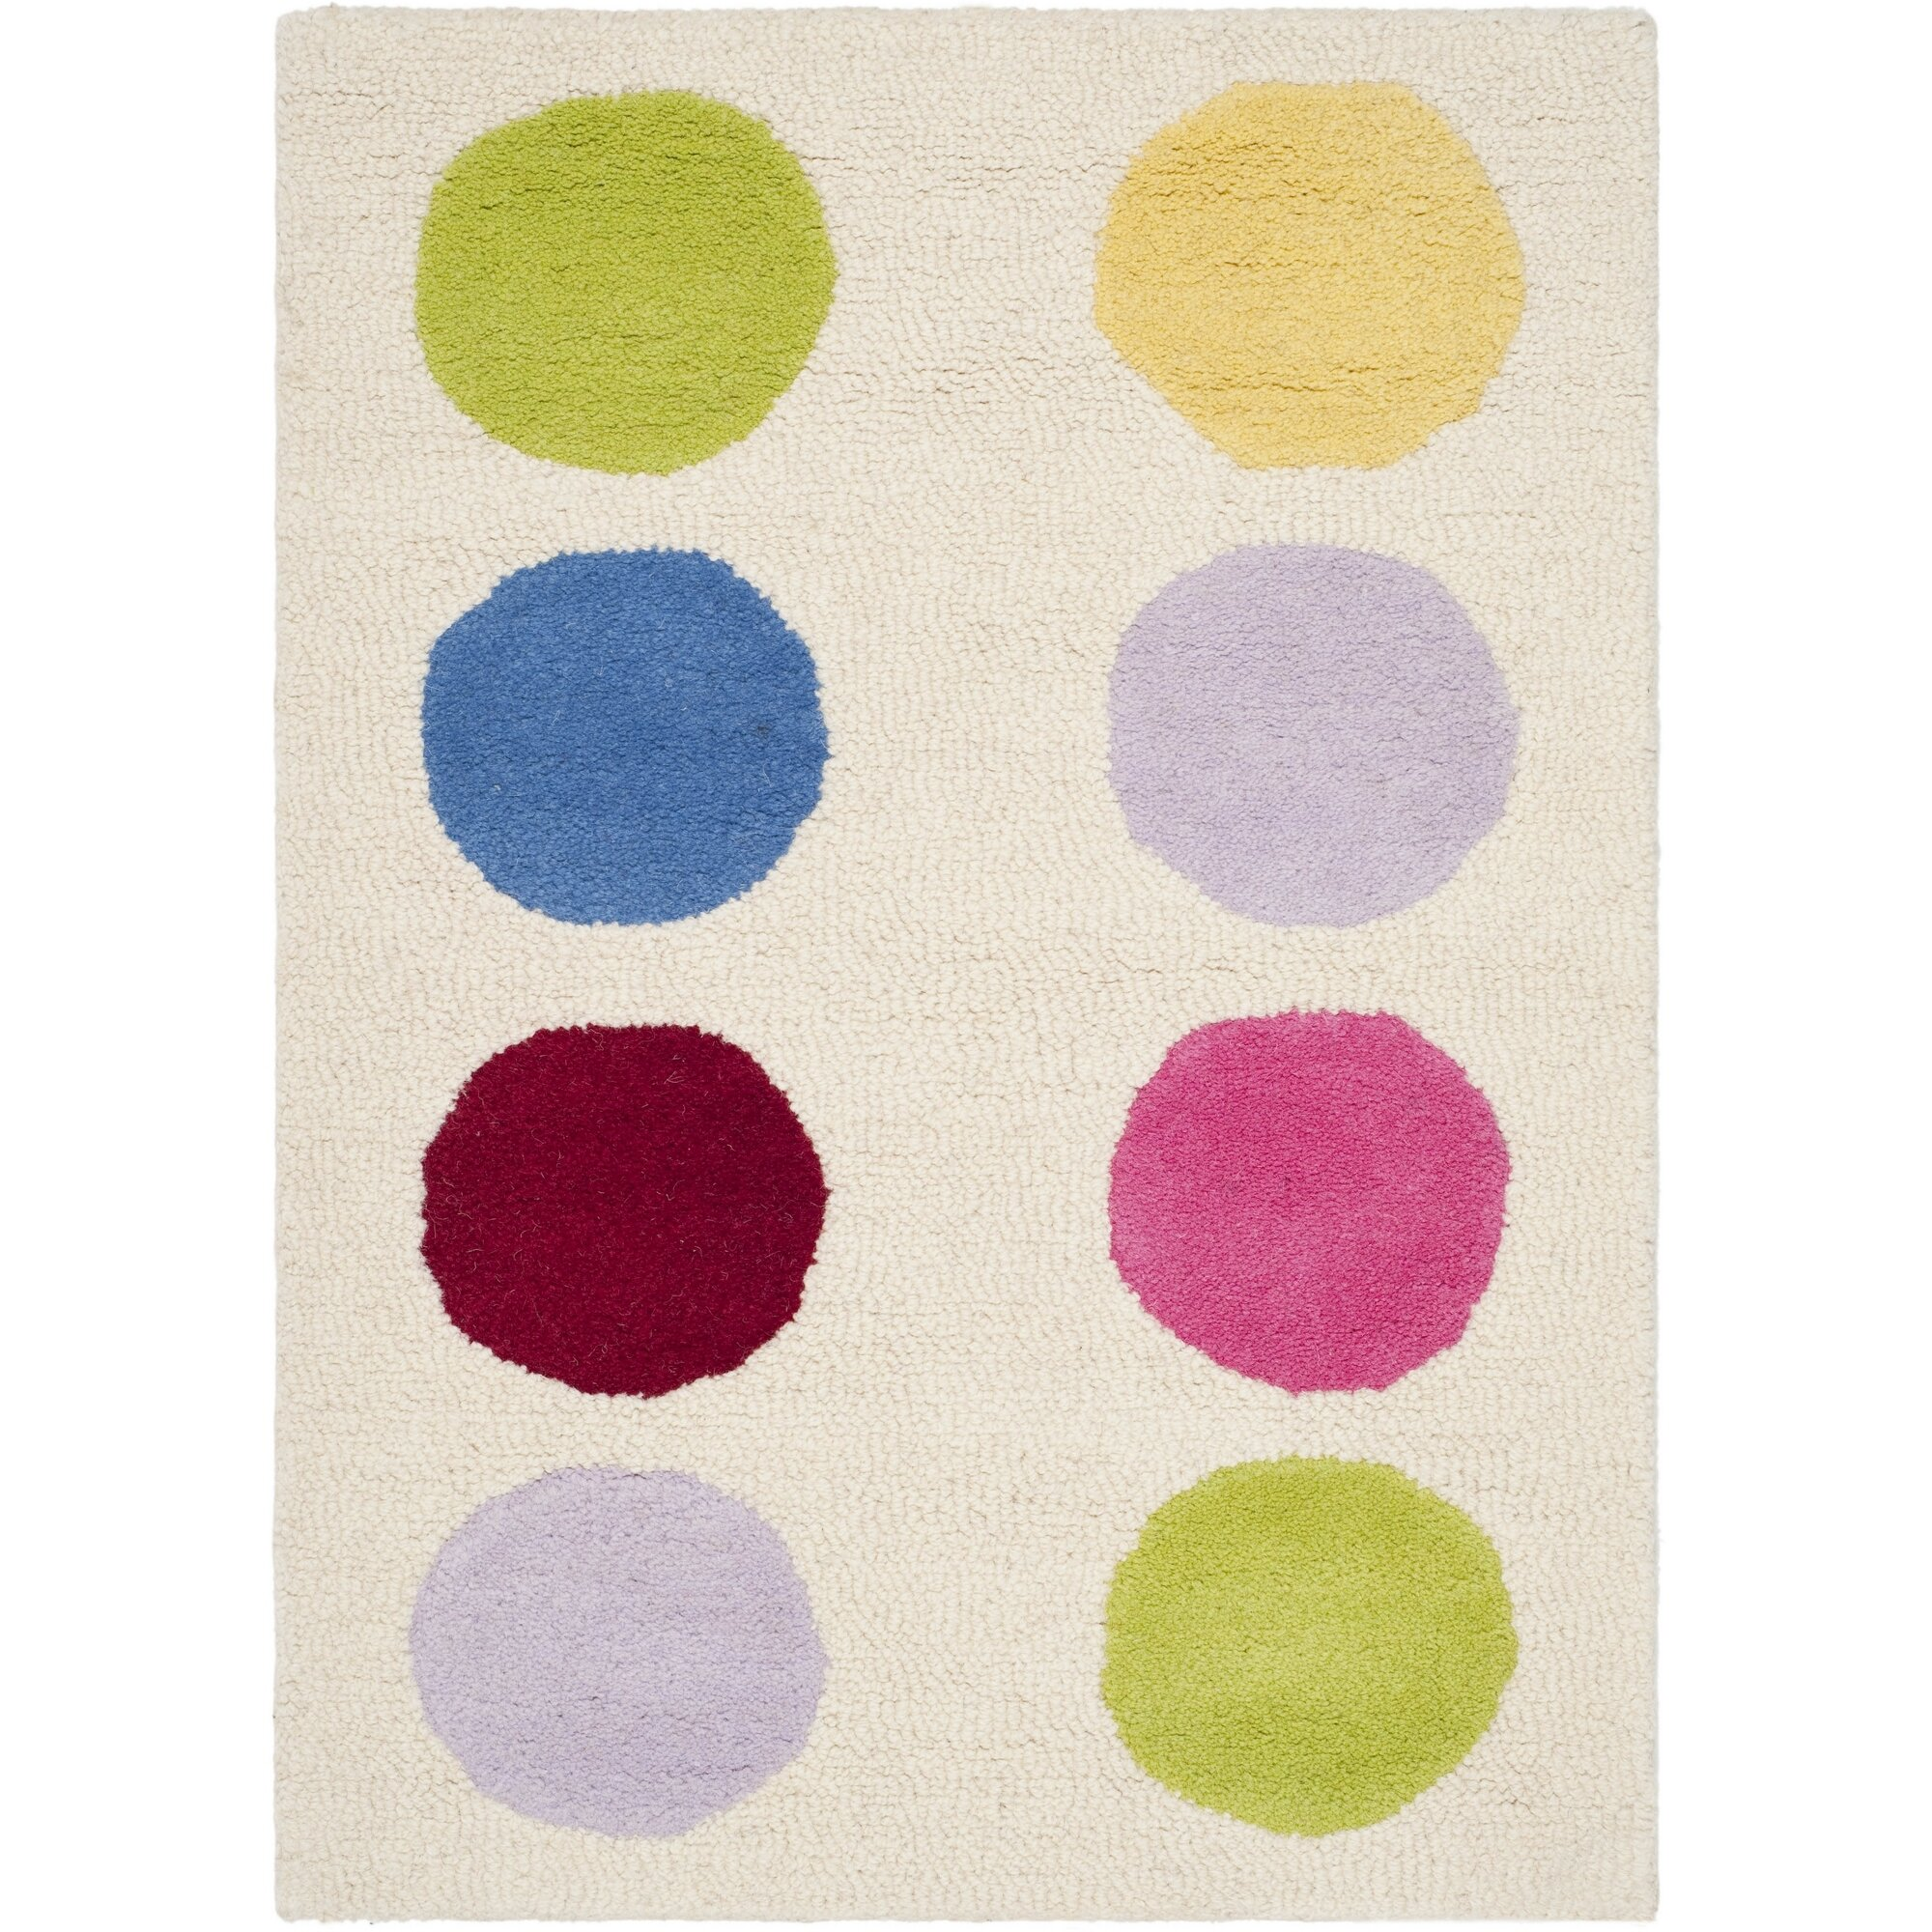 Safavieh Polka Dot Area Rug & Reviews